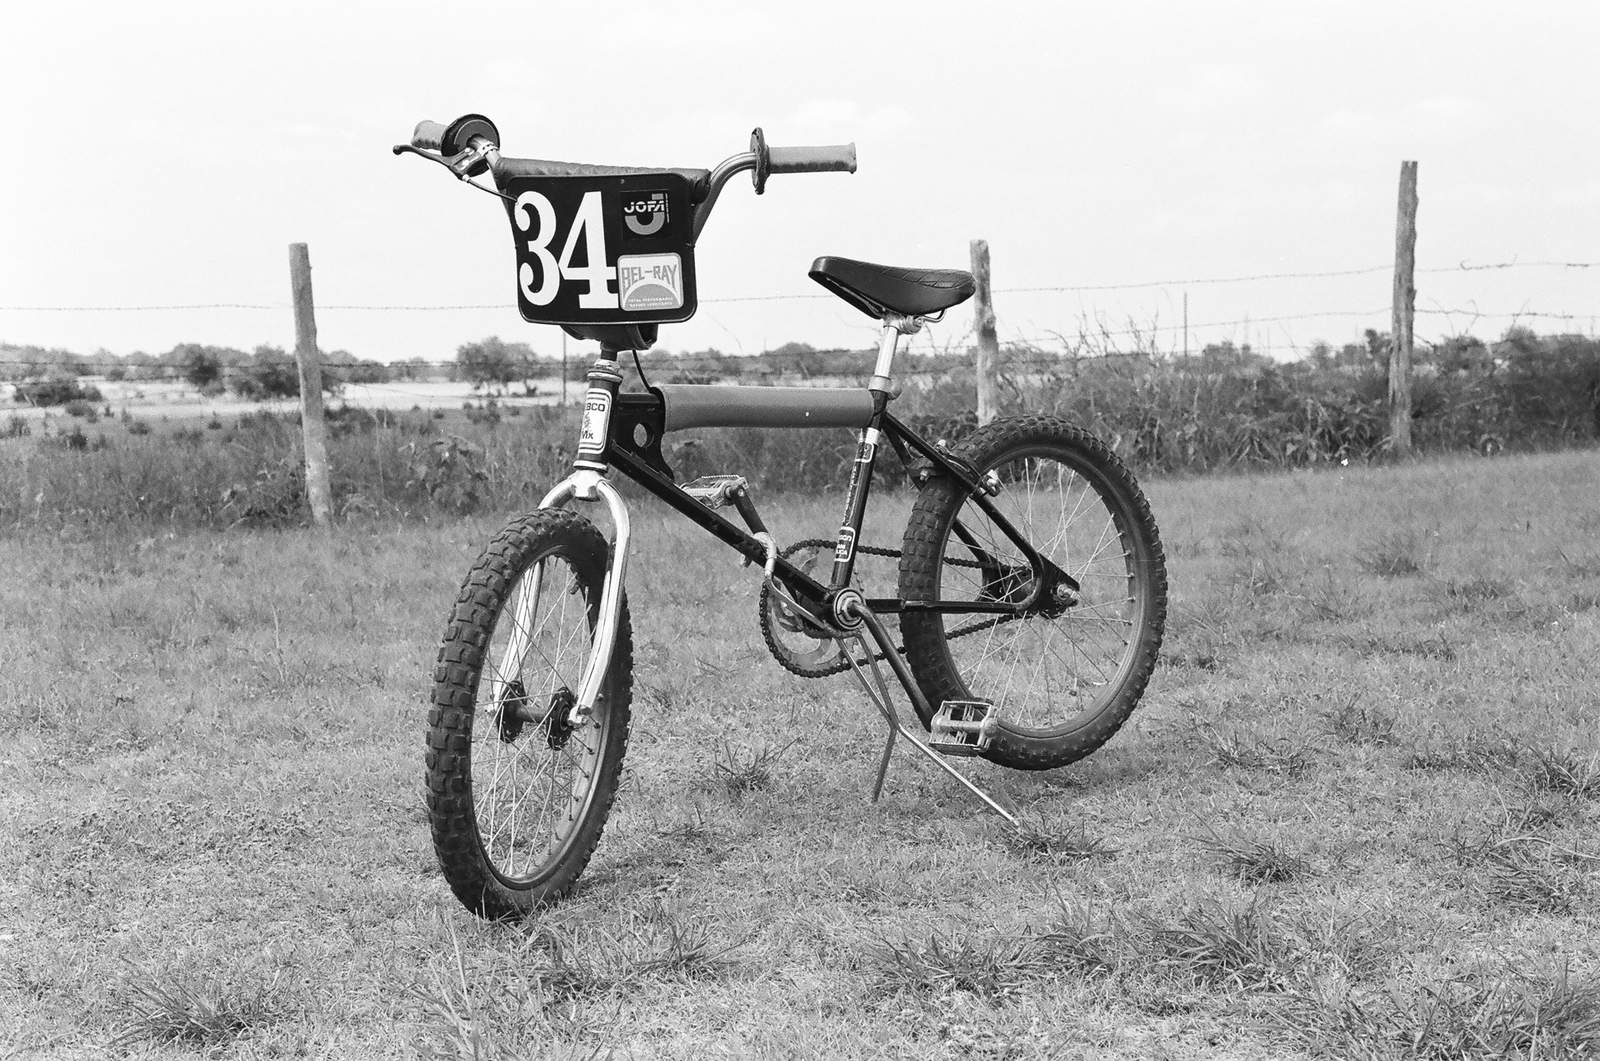 https://s3.amazonaws.com/uploads.bmxmuseum.com/user-images/218478/100500015ed81d3097.jpg